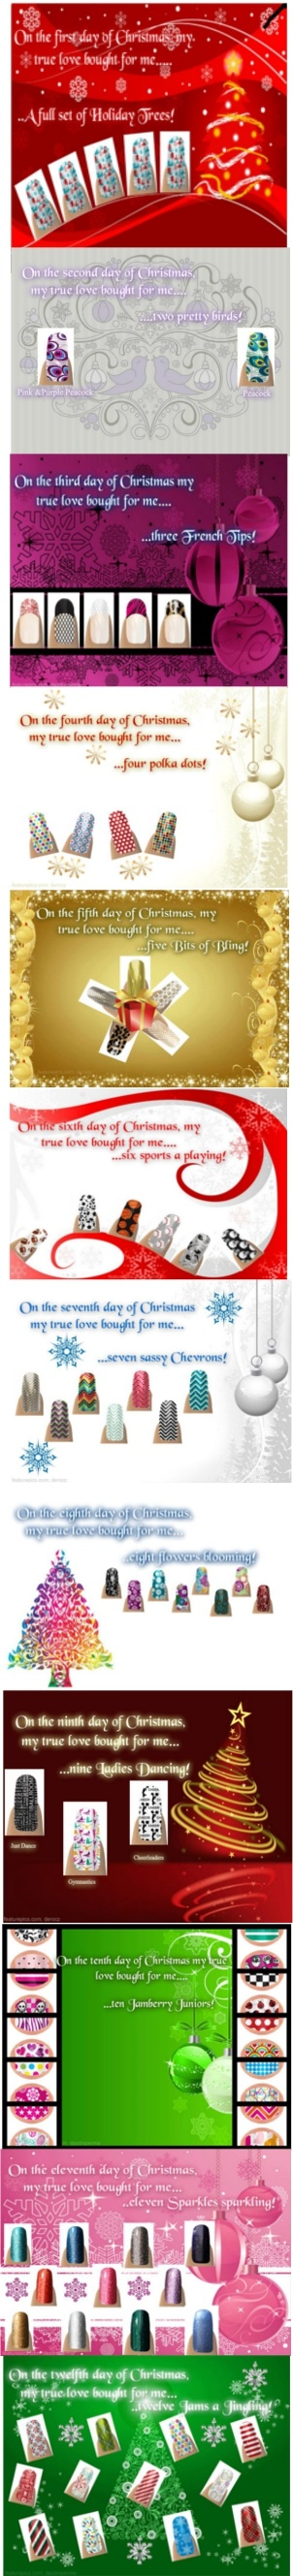 The 12 Days of Christmas - Jamberry Style!  #Christmas #holidays #nailshields #nails